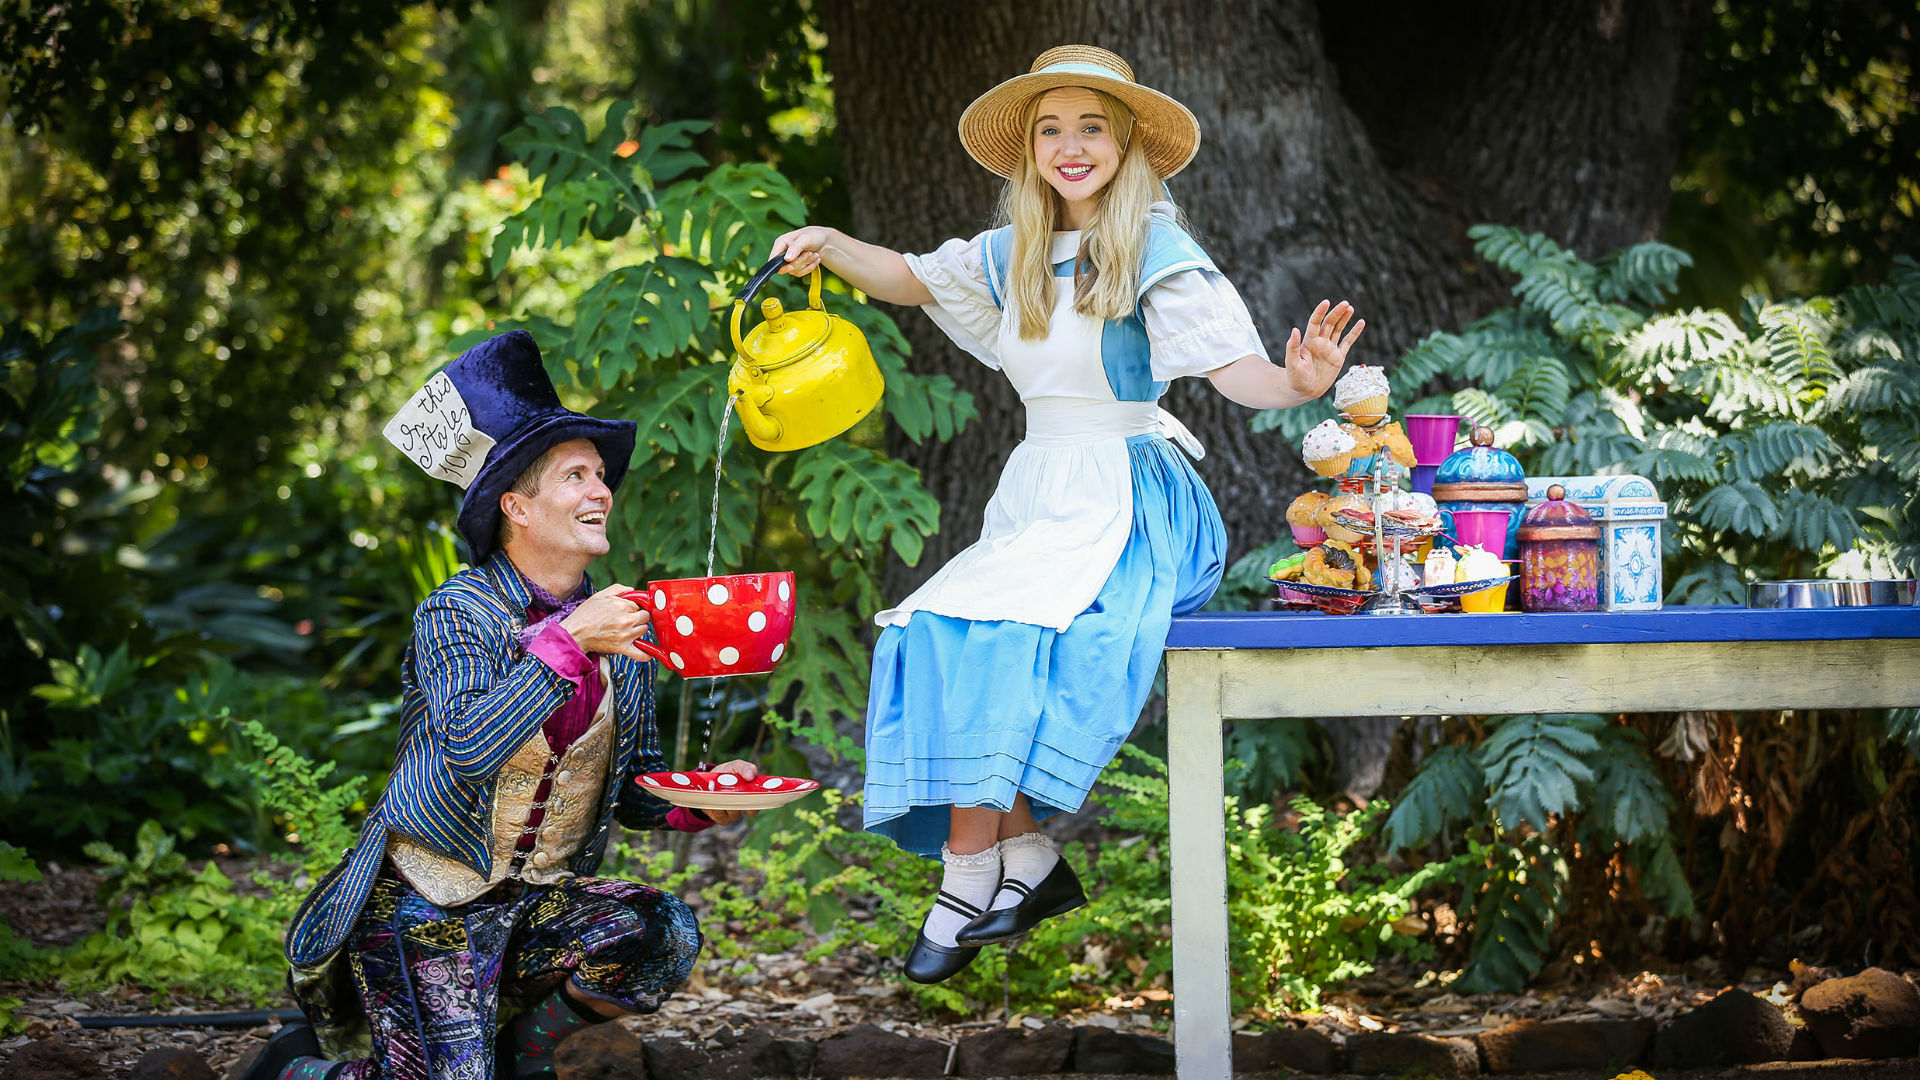 Alice and the Mad Hatter in Alice in Wonderland at Kew Gardens